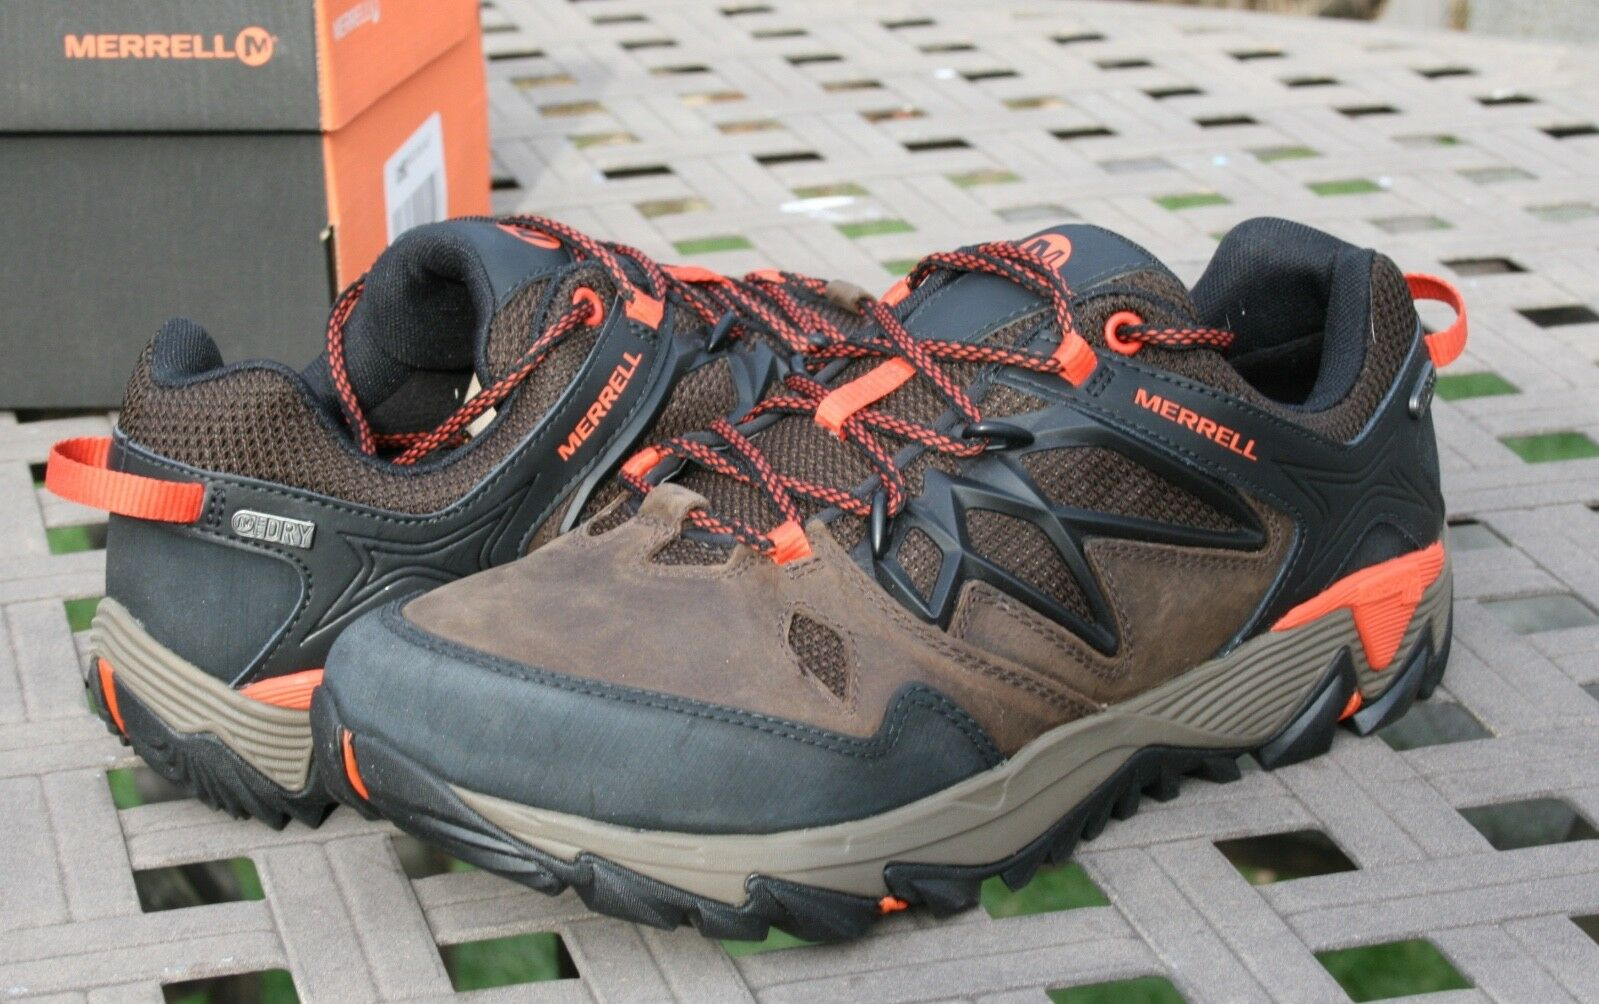 c603267d4b MERRELL ALL BLAZE Waterproof US 9 Men's Trail Hiking shoes OUT 2  npguip1607-new shoes